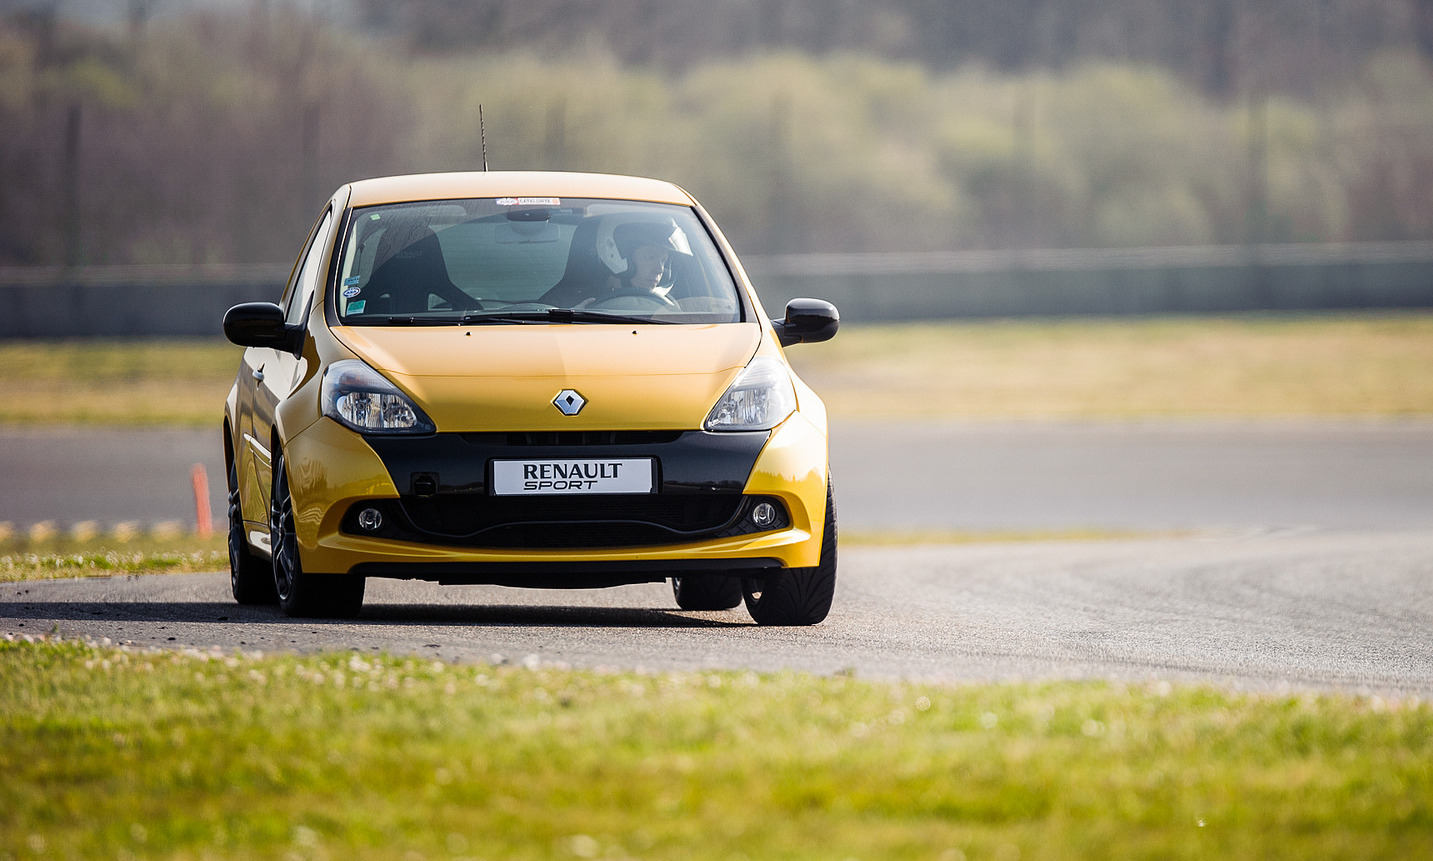 Auto Sportive Usate Renault Clio Rs 197 Auto Sportive